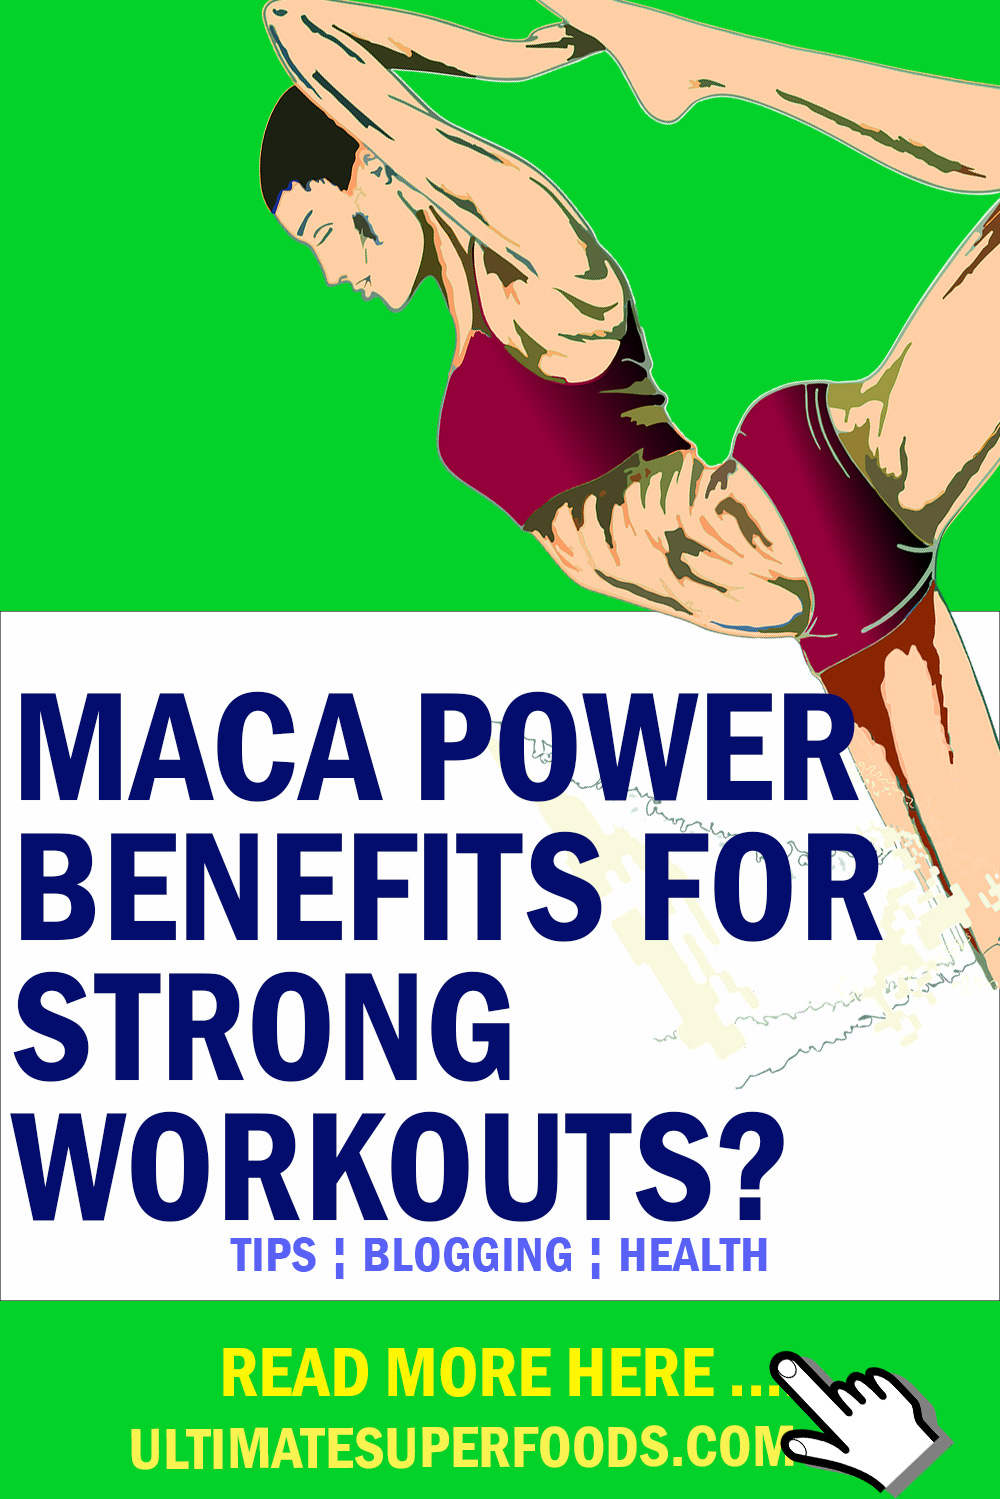 Maca-Power-Benefits